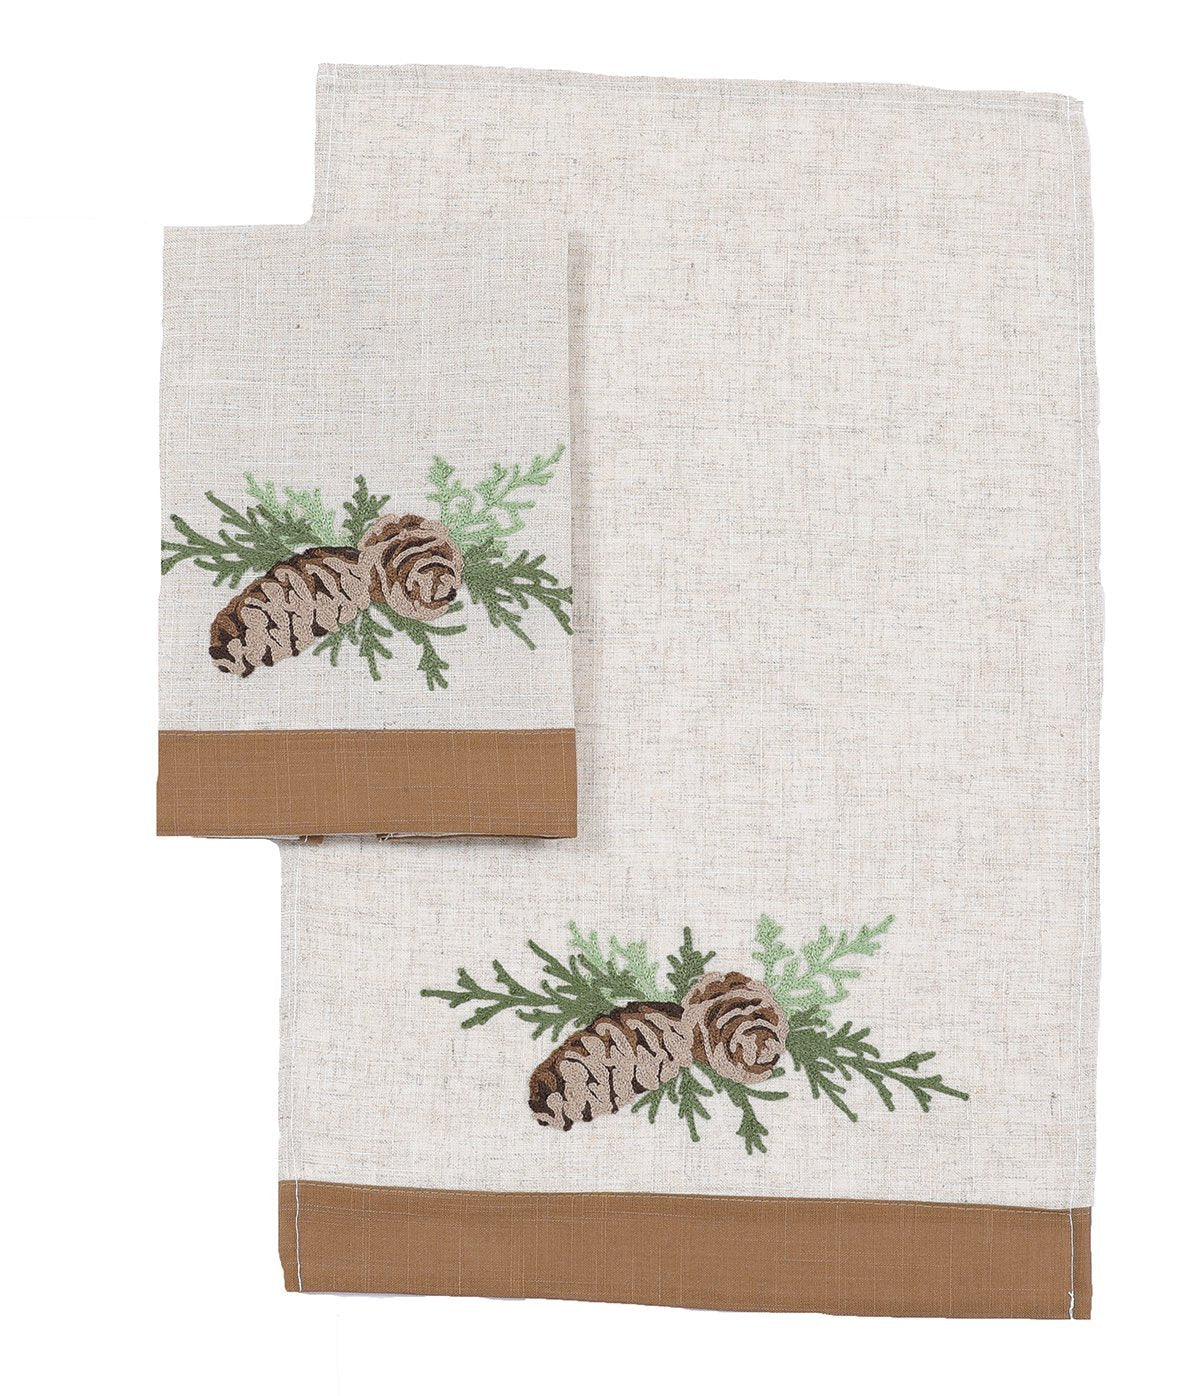 XD19882-Winter Pine Cones & Branches Crewel Embroidered Decorative